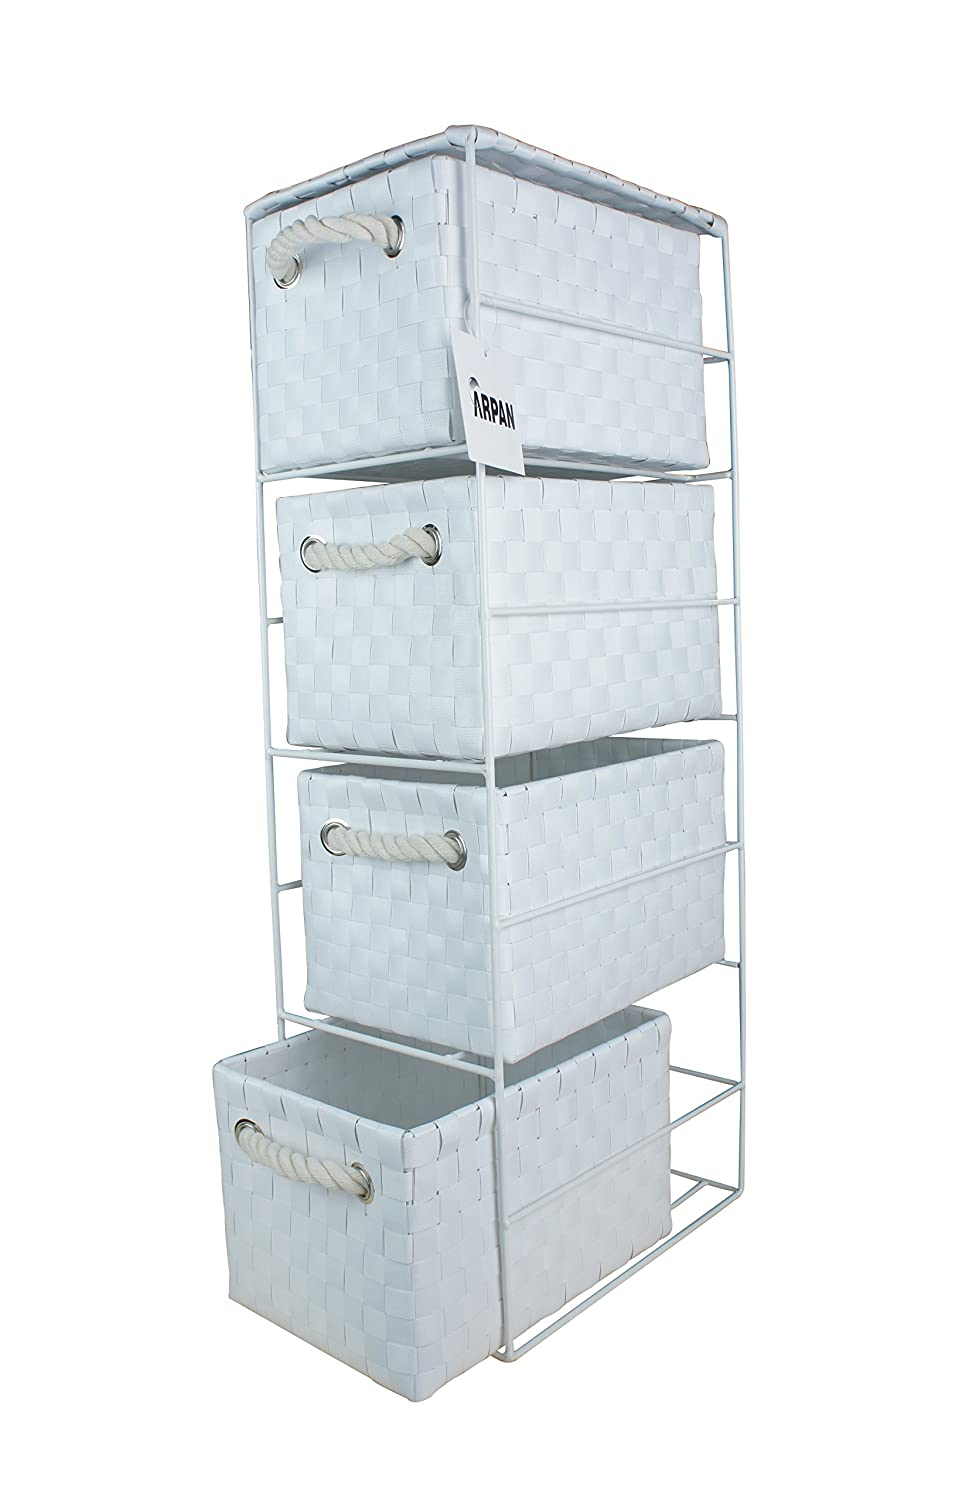 2 x 4 Drawer Storage Cabinet Unit for Bedroom/Bathroom/Home/Office ...